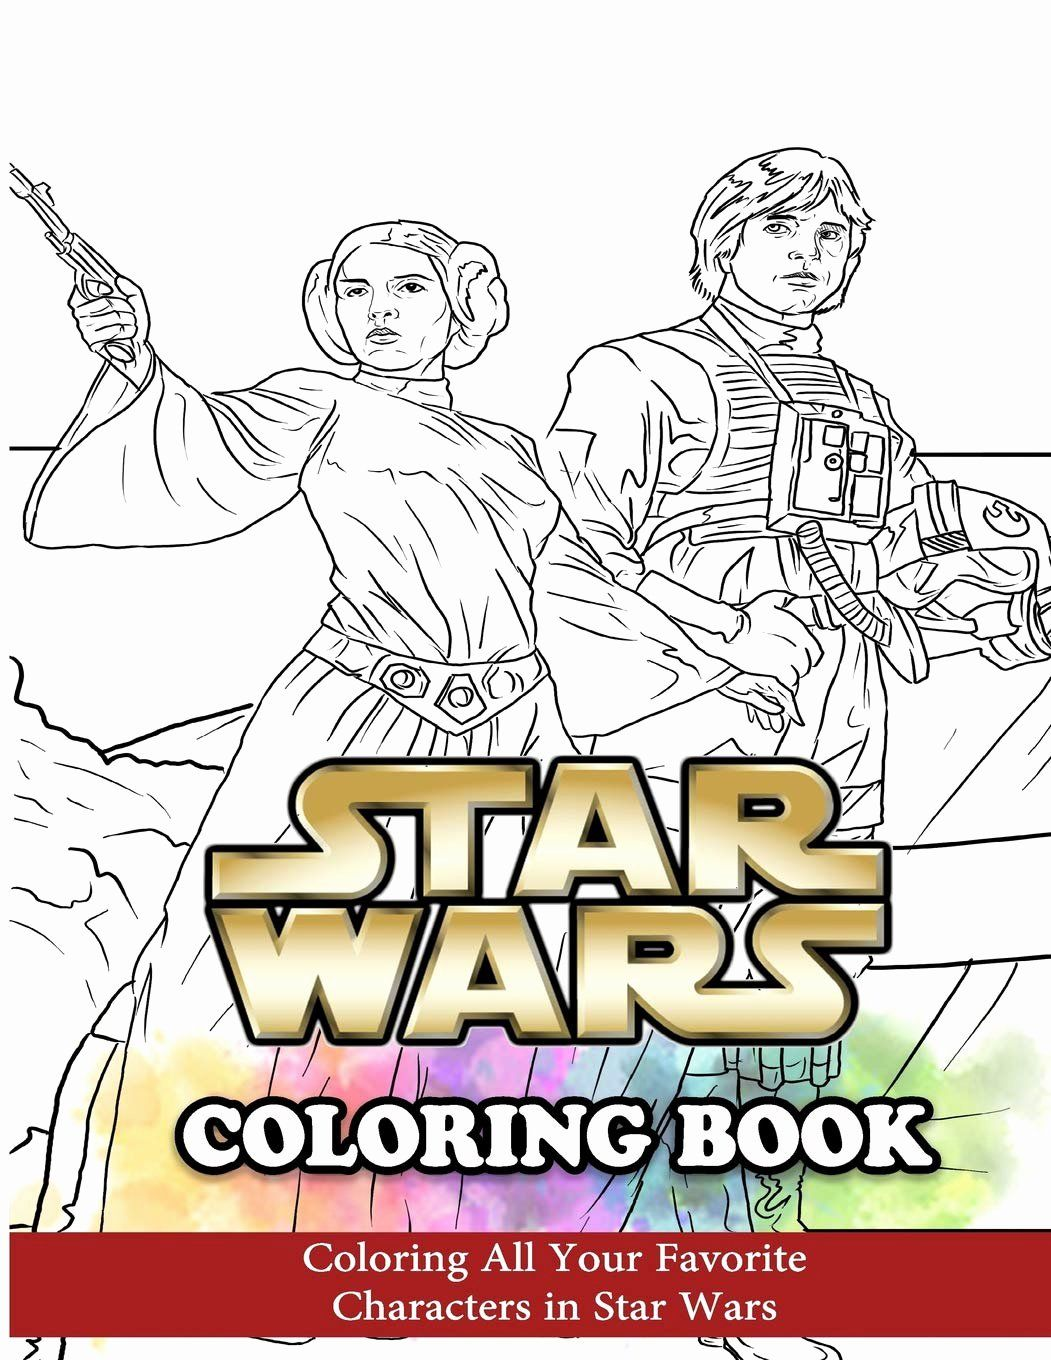 Star Wars Jedi Coloring Pages Star Wars Coloring Book Star Wars Coloring Sheet Coloring Books